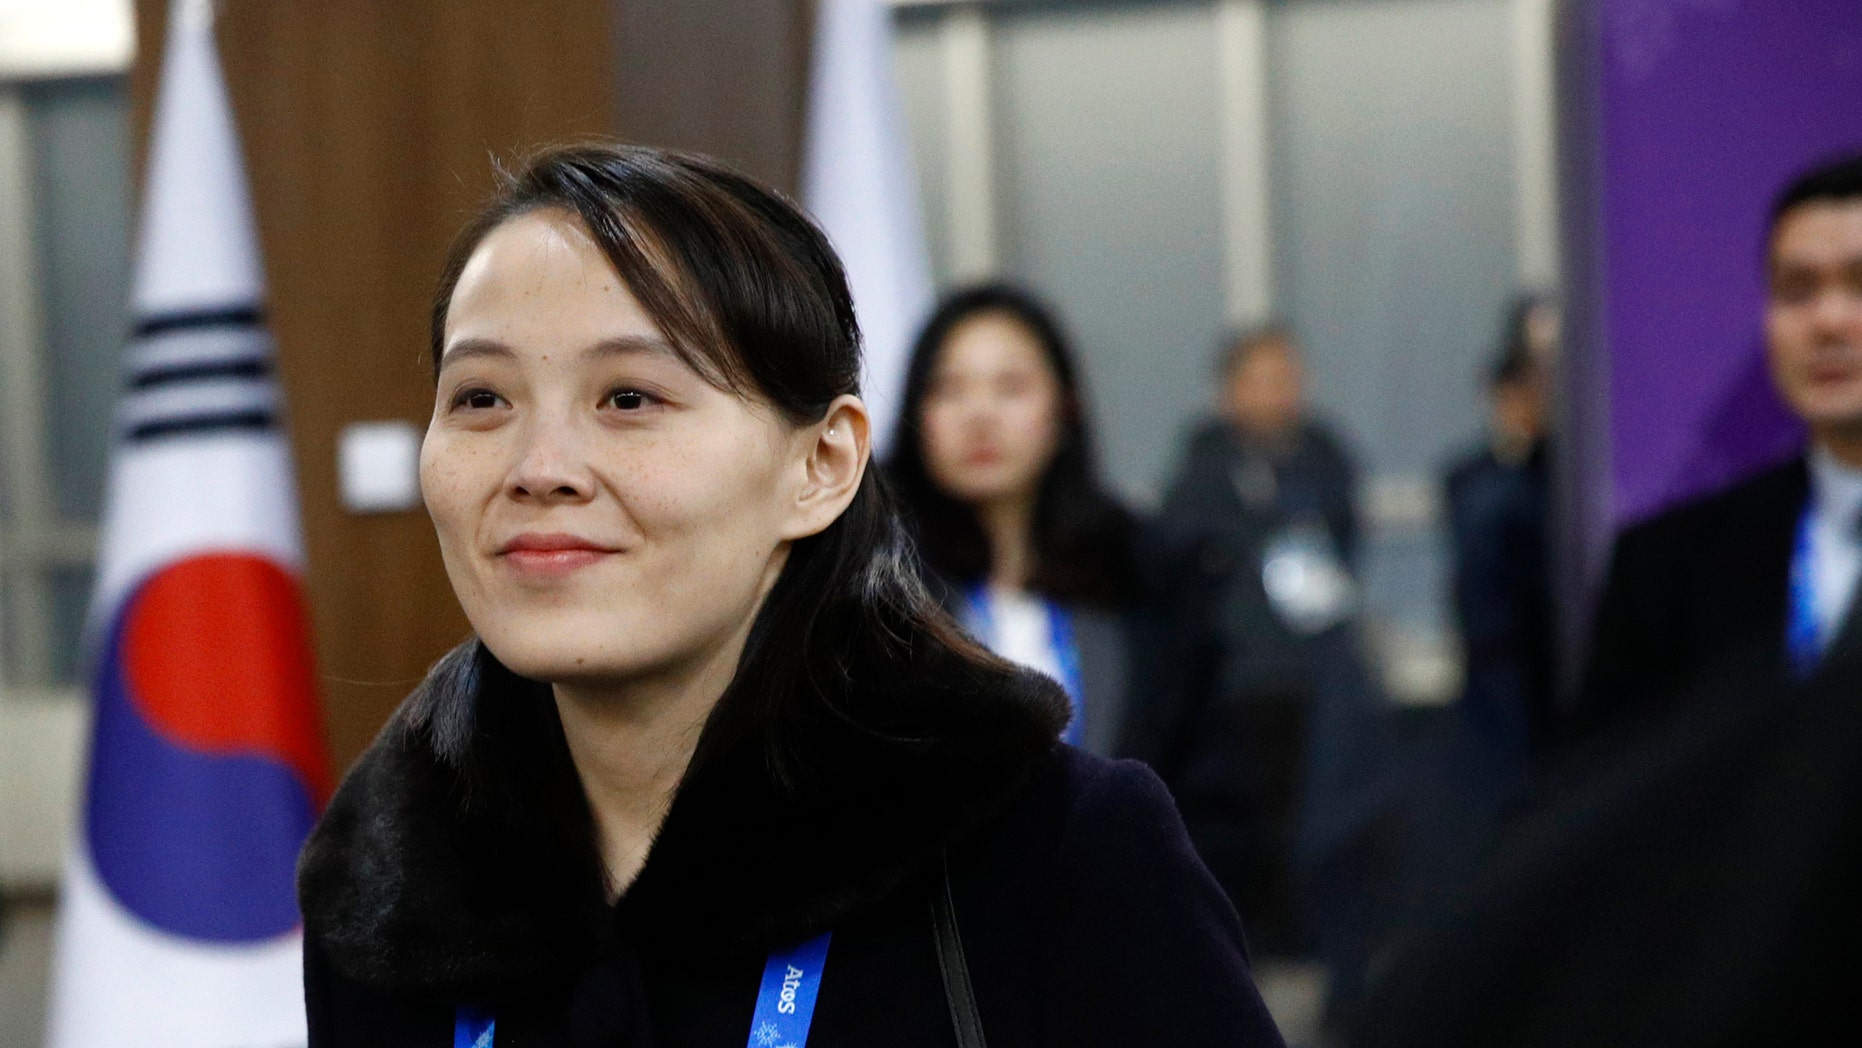 Kim Yo Jong gained notoriety at the Winter Olympics in South Korea.